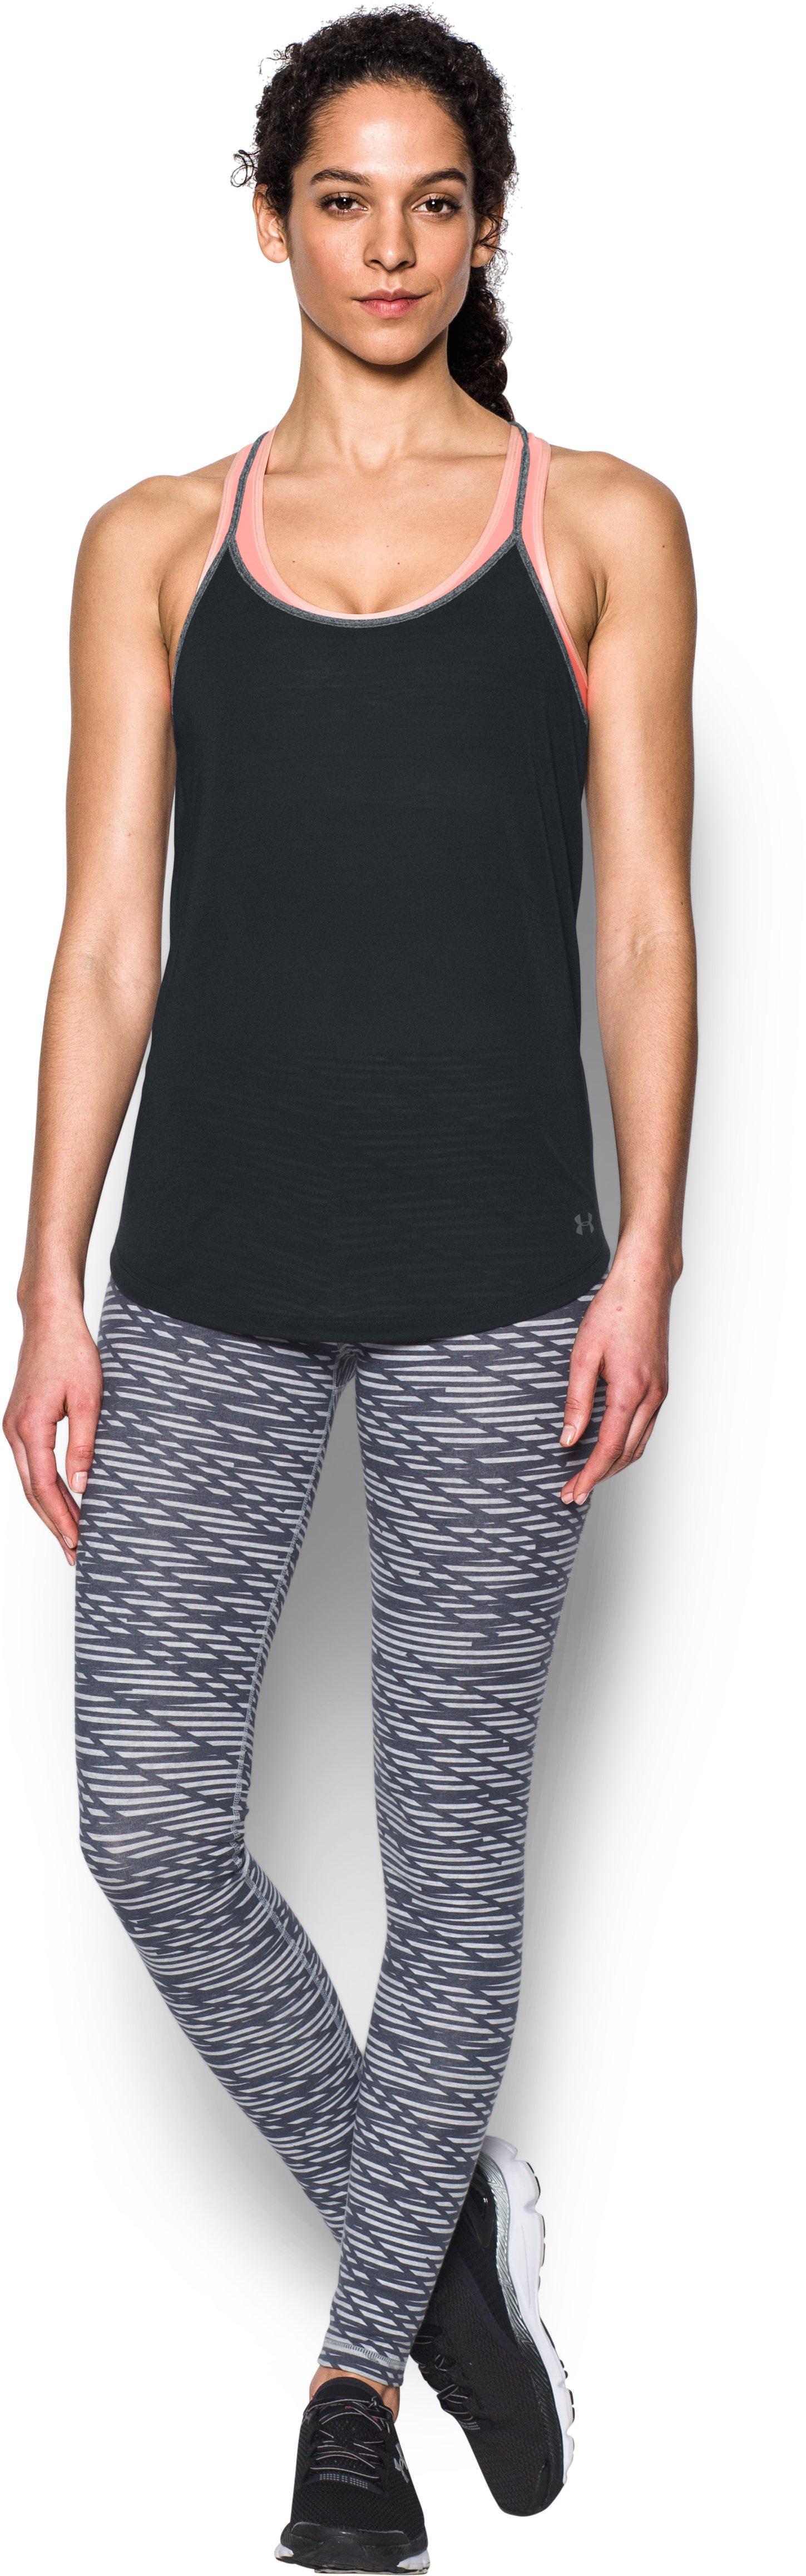 Women's UA Threadborne Train Strappy Tank 4 Colors $16.99 - $20.99